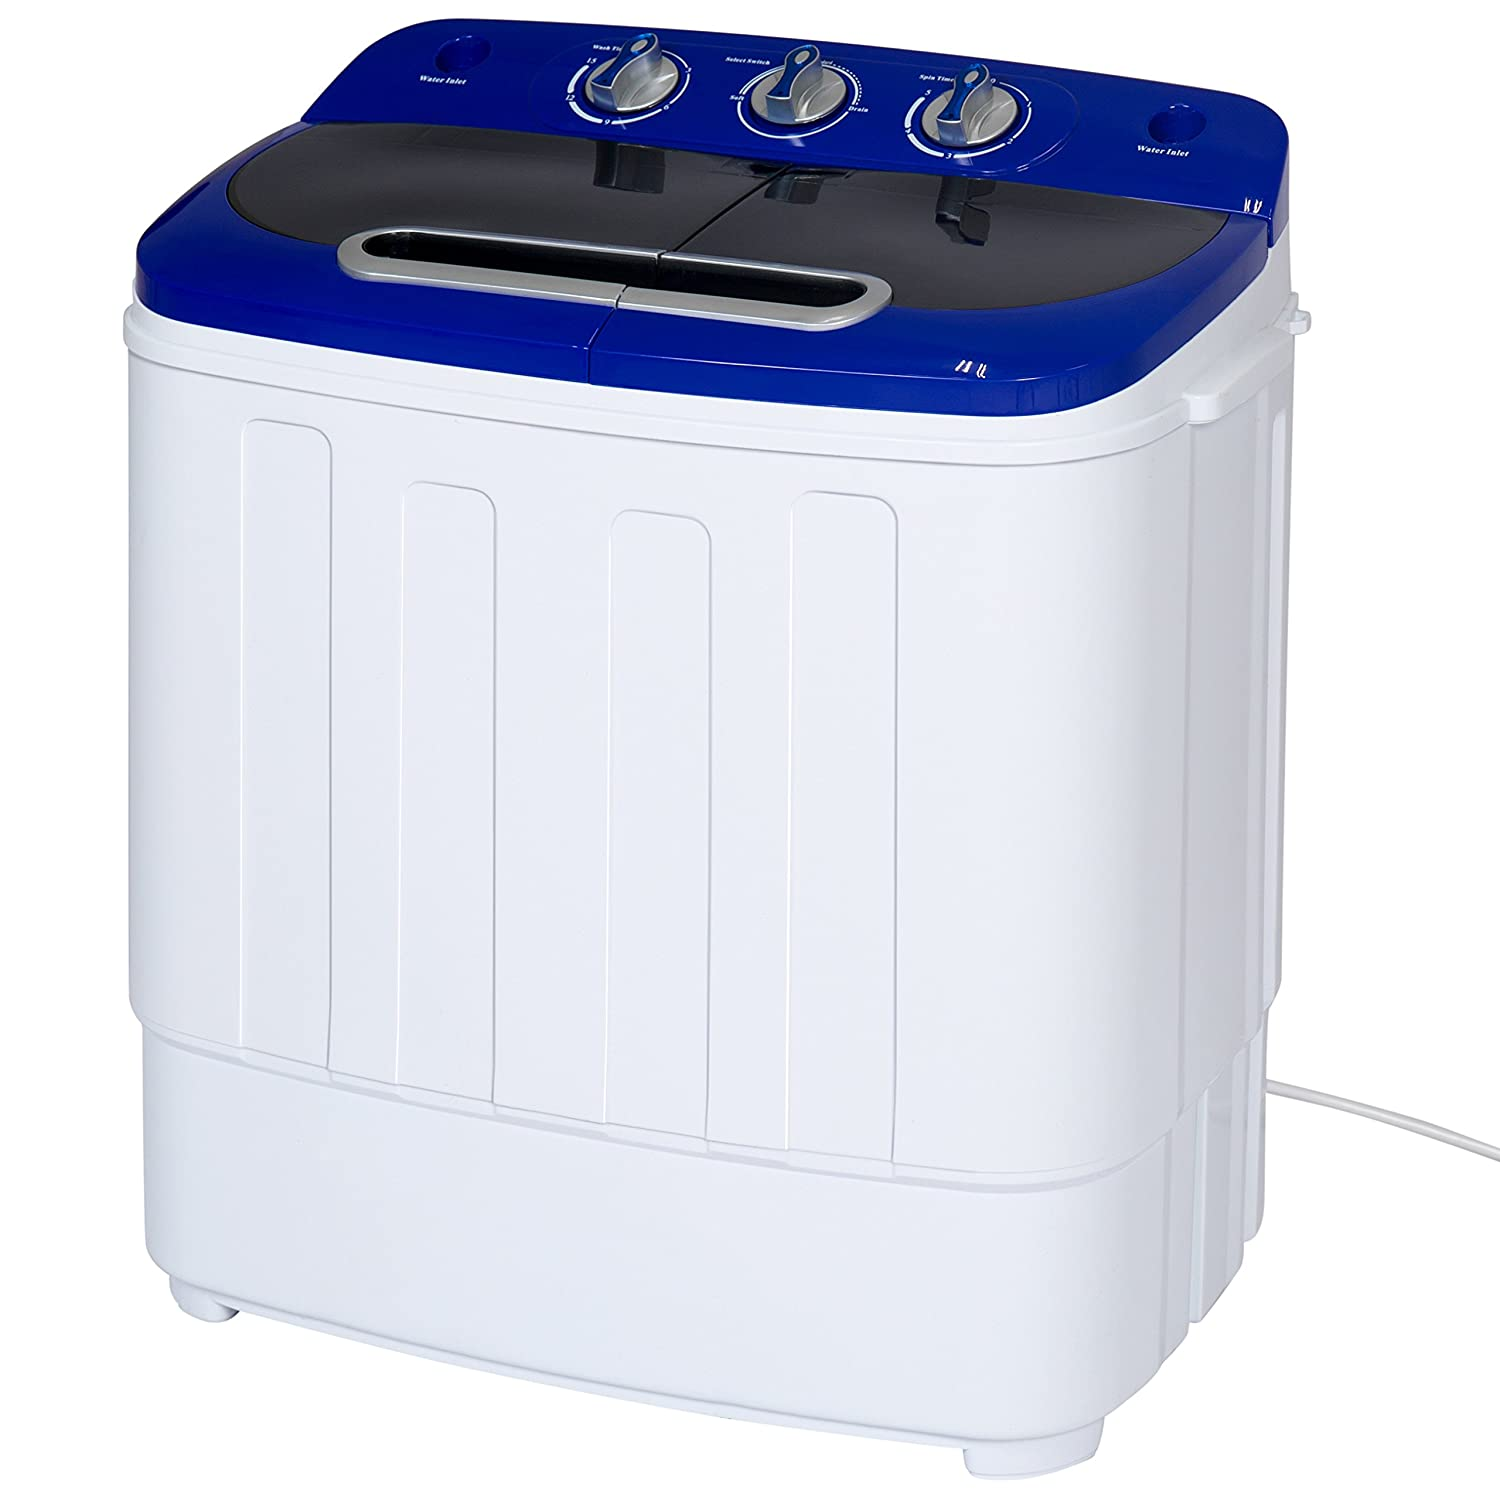 Portable Compact & Mini Twin Tub Washing Machine and Spin Cycle w/ Hose, 13lbs. Cap